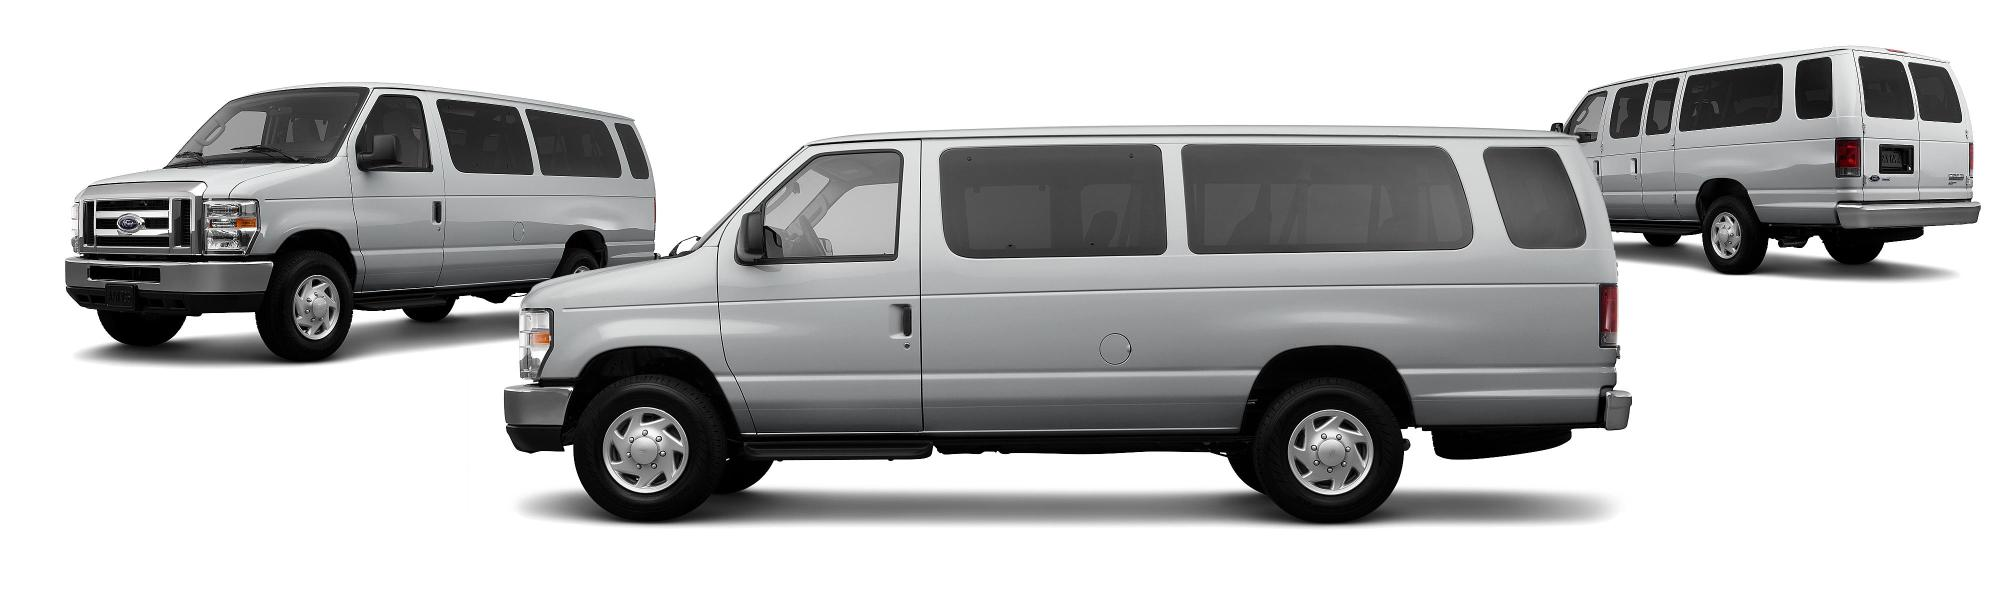 hight resolution of 2012 ford e series wagon e 150 xlt 3dr passenger van research groovecar